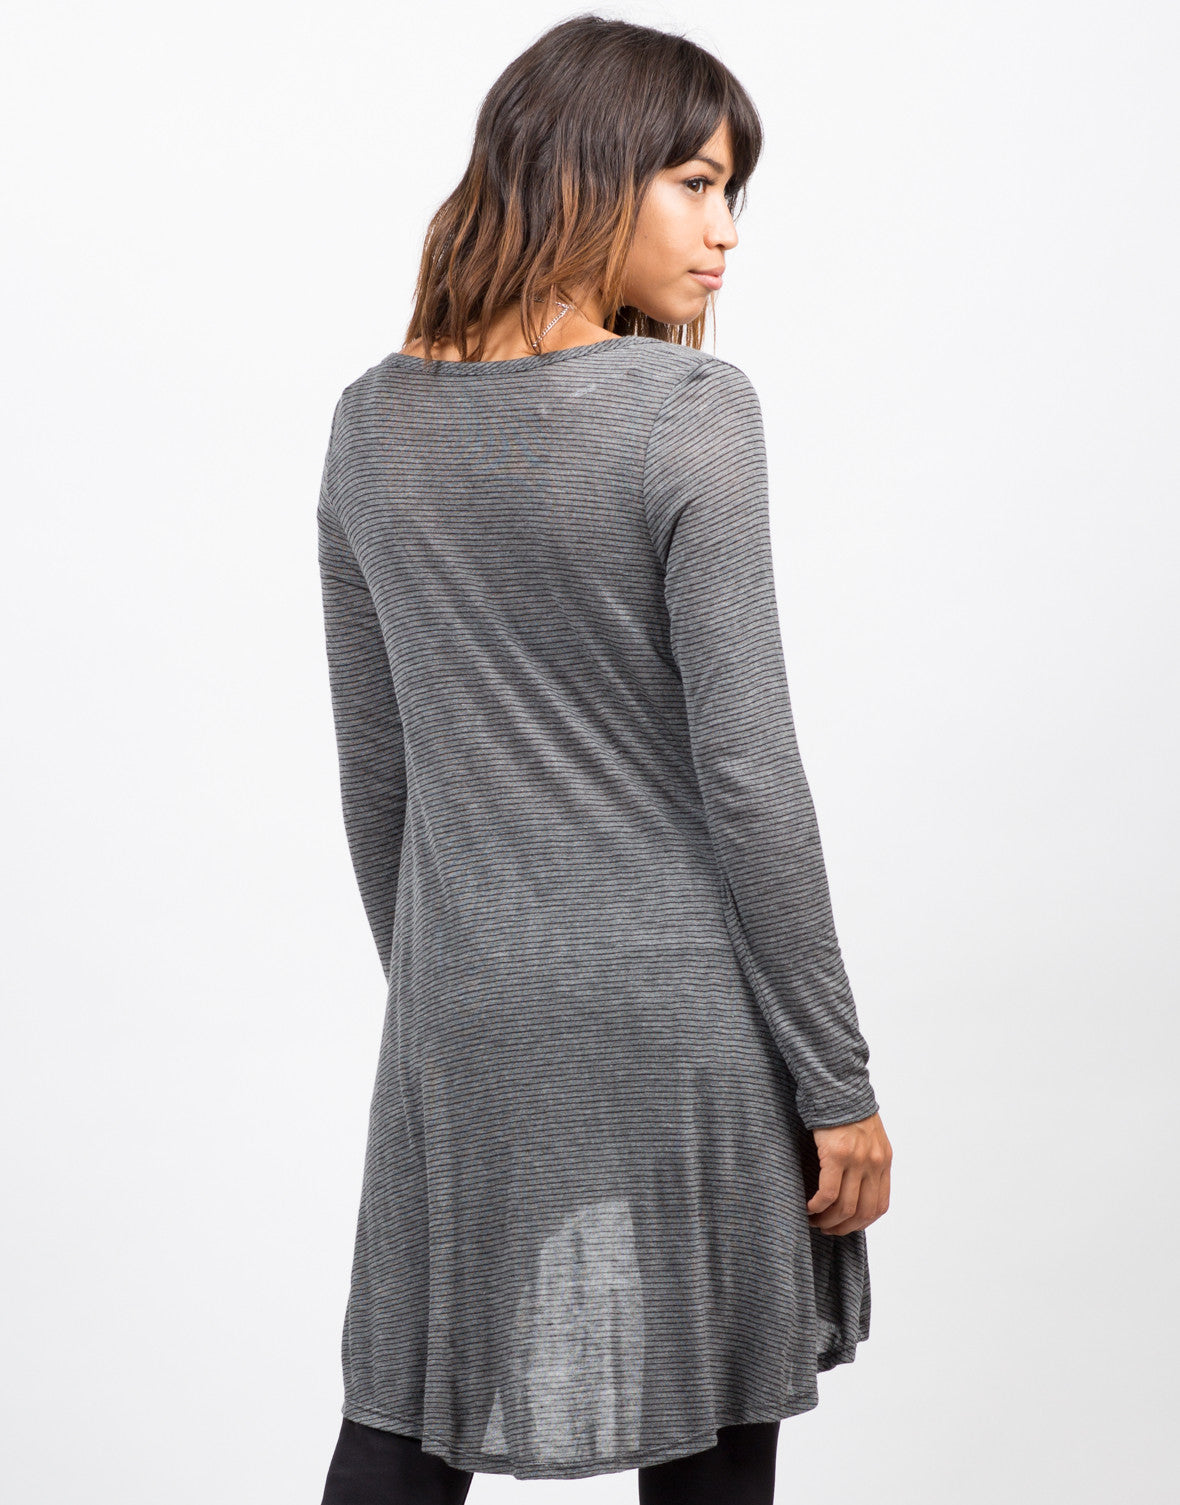 Back View of Pin Stripe Lightweight Cardigan